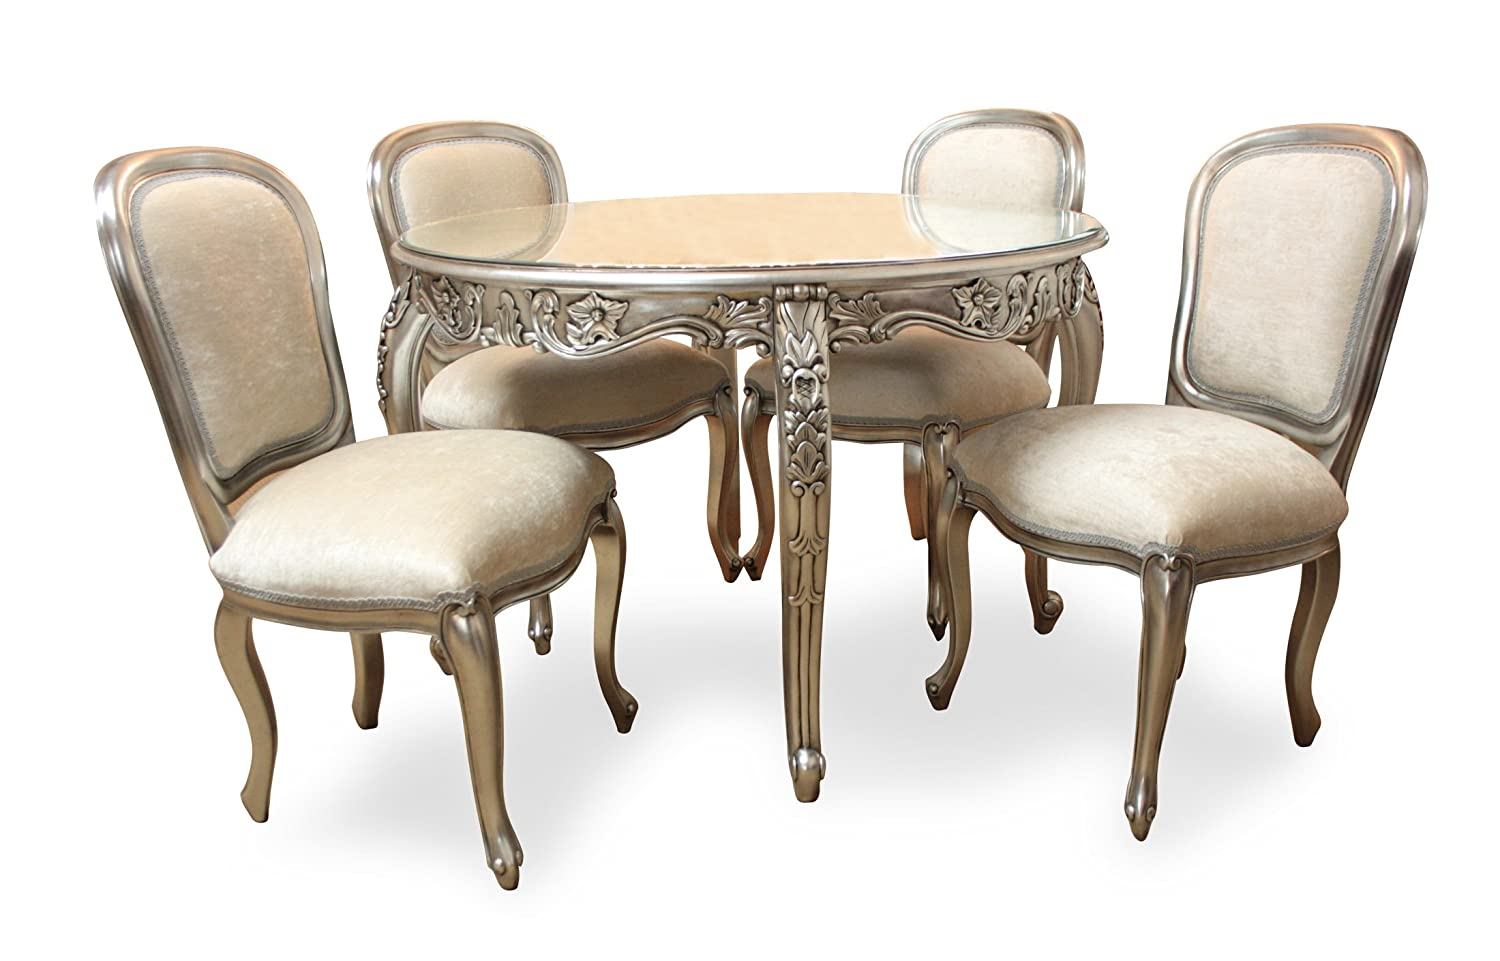 French Style Furniture Carved Round Dining Table And 4 Chairs Silver:  Amazon.co.uk: Kitchen U0026 Home